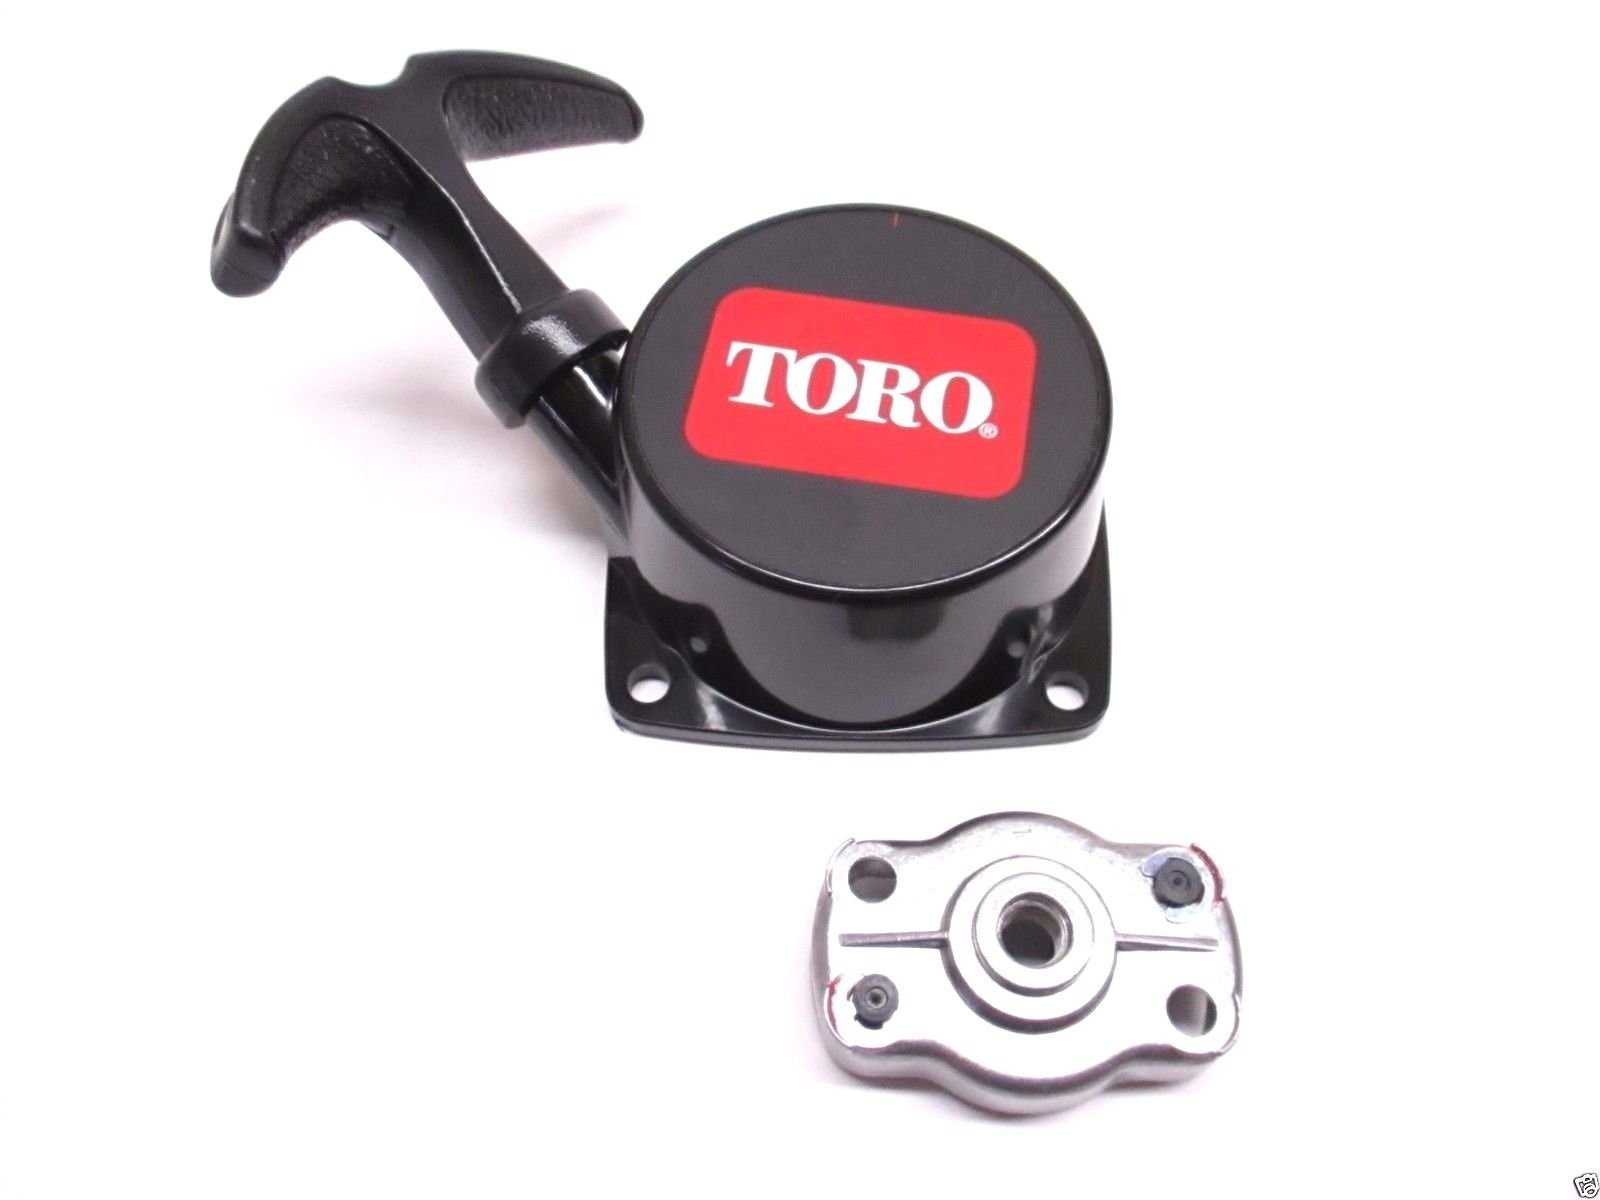 Homelite Toro Ryobi OEM Trimmer Recoil Starter 308430016 by Homelite